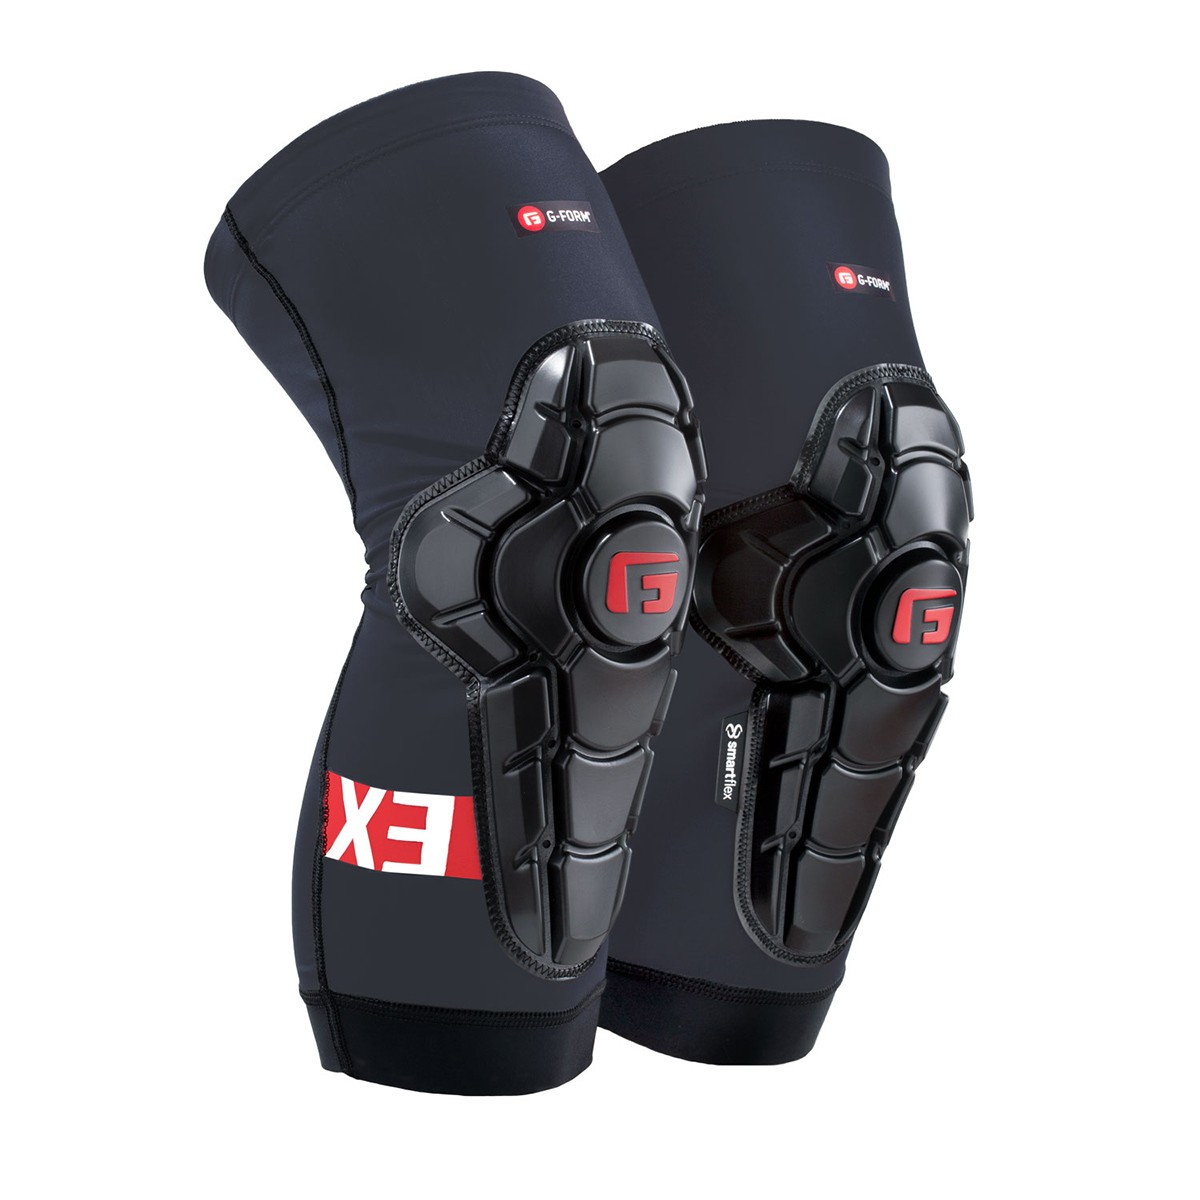 G-FORM YOUTH PRO-X3 KNEE PADS